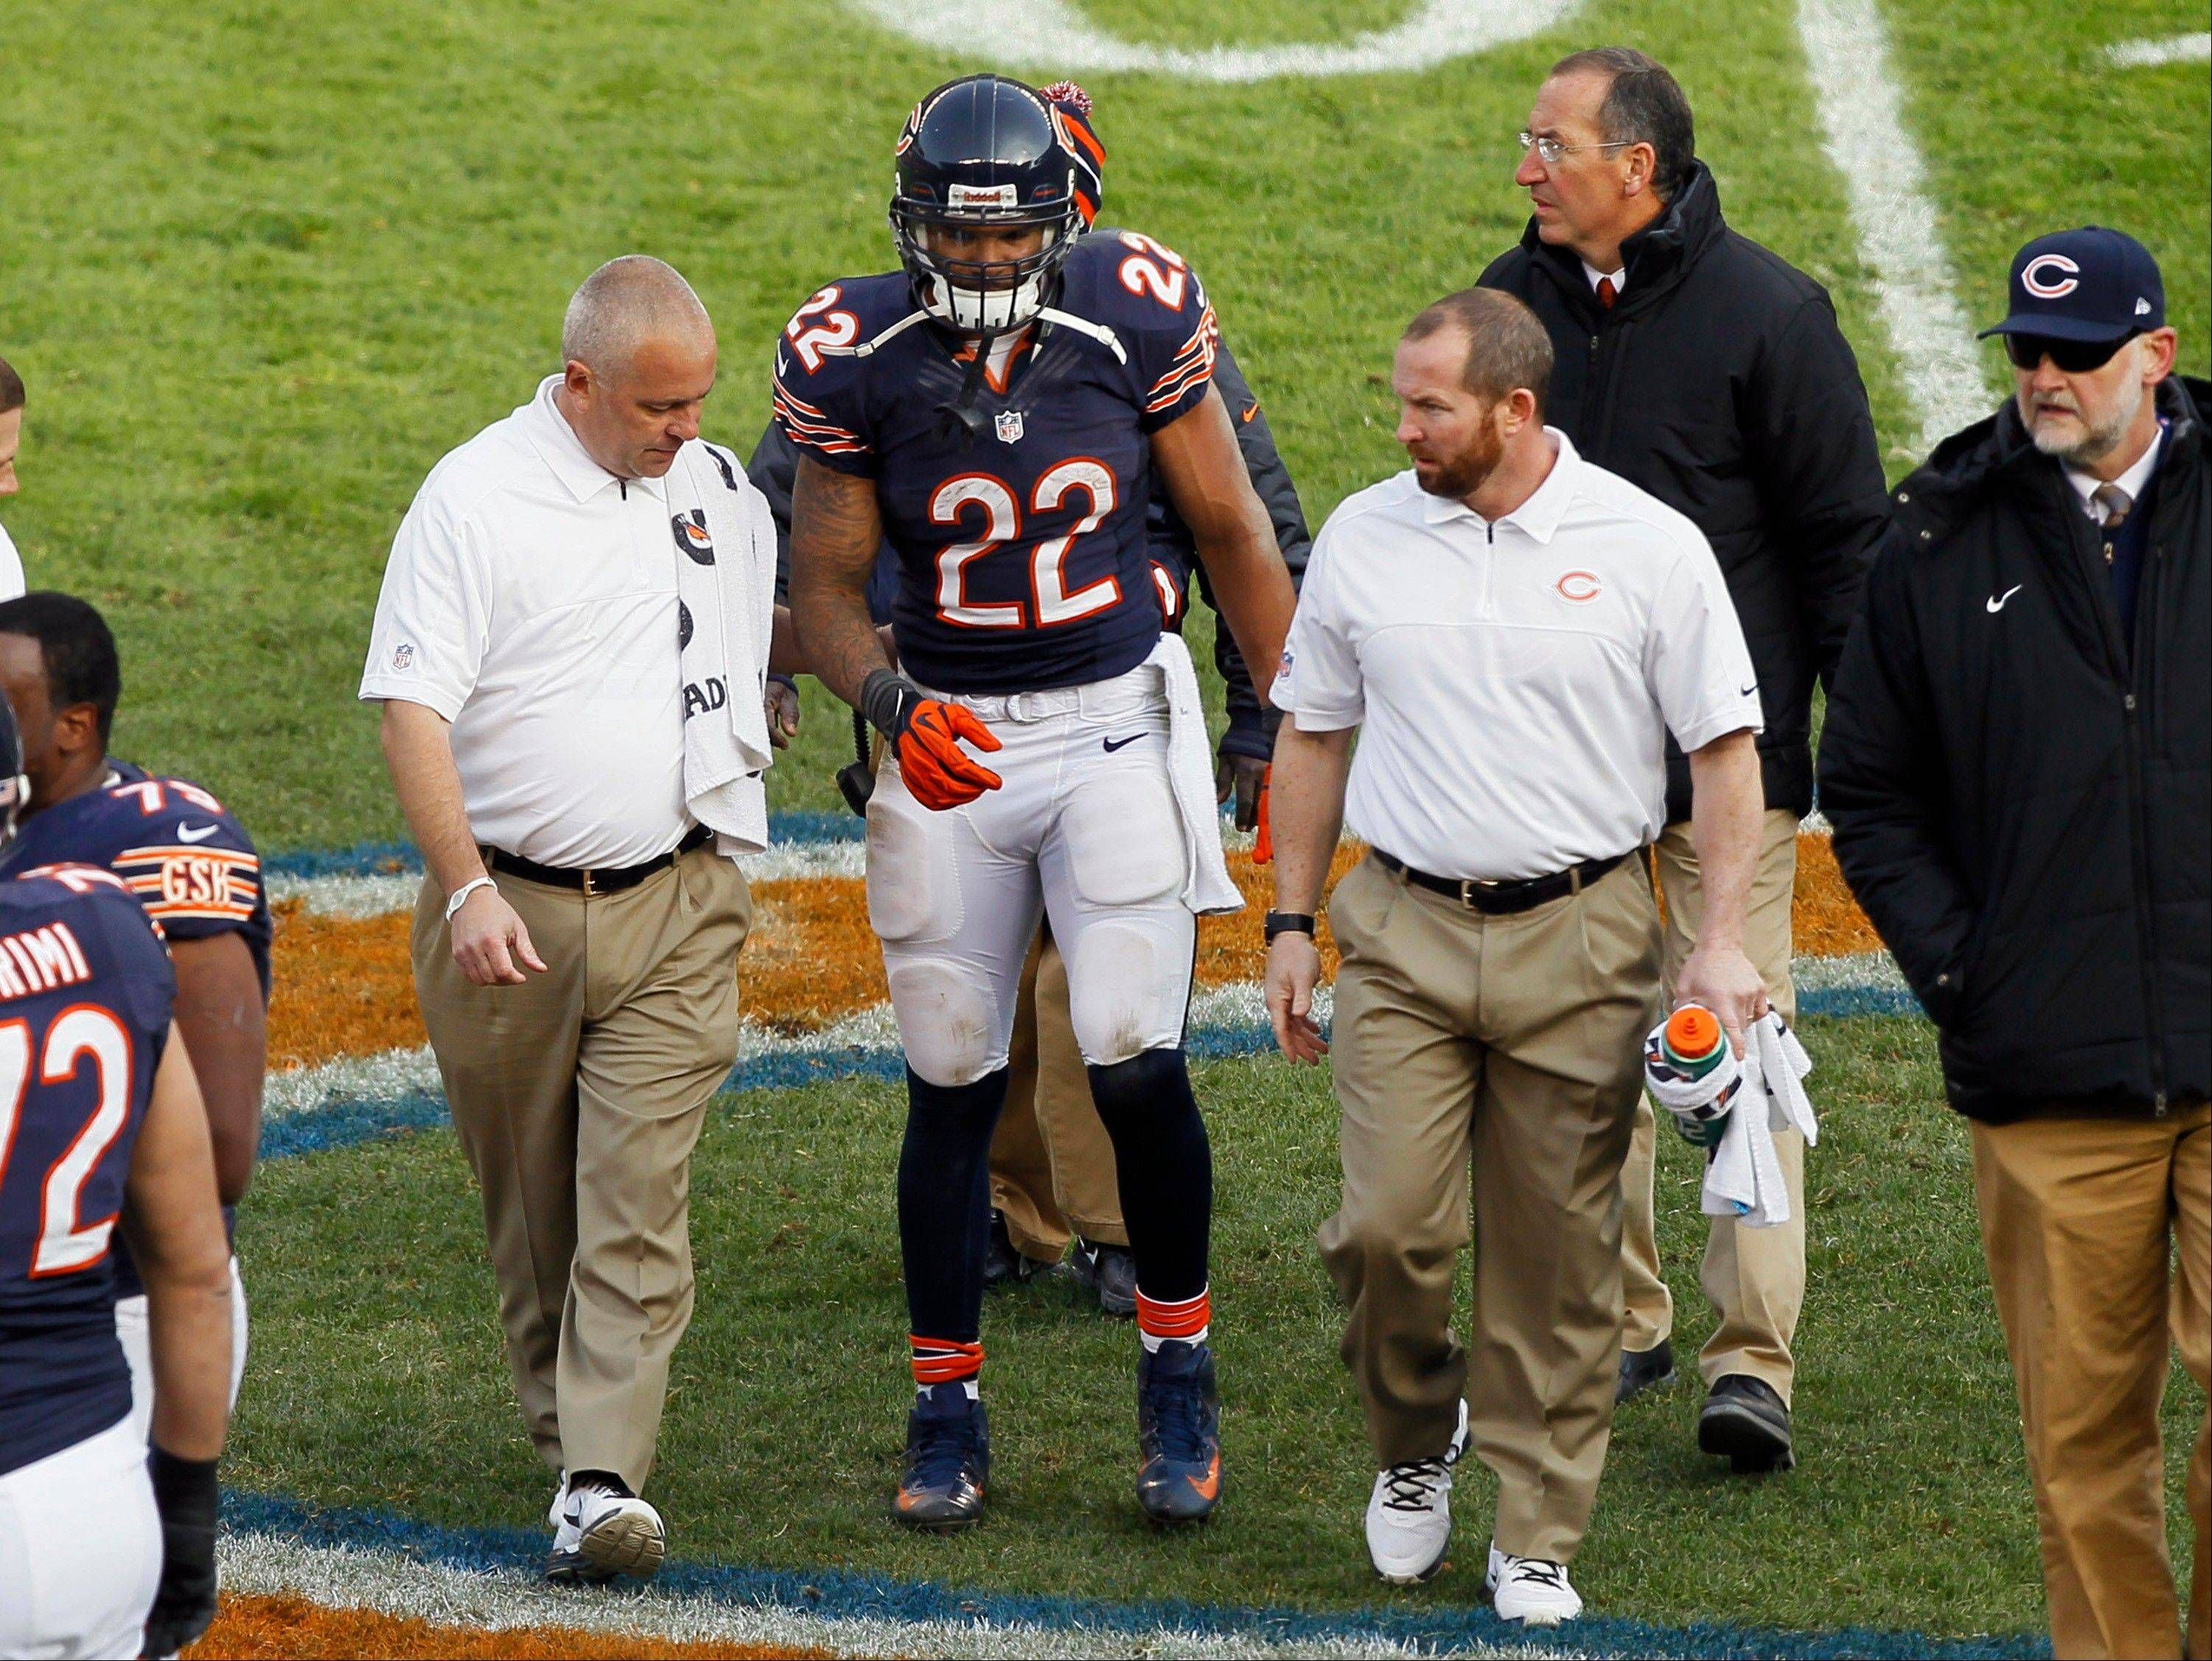 Chicago Bears running back Matt Forte (22) walks off the field with trainers after an injury in the second half of an NFL football game against the Minnesota Vikings in Chicago, Sunday.